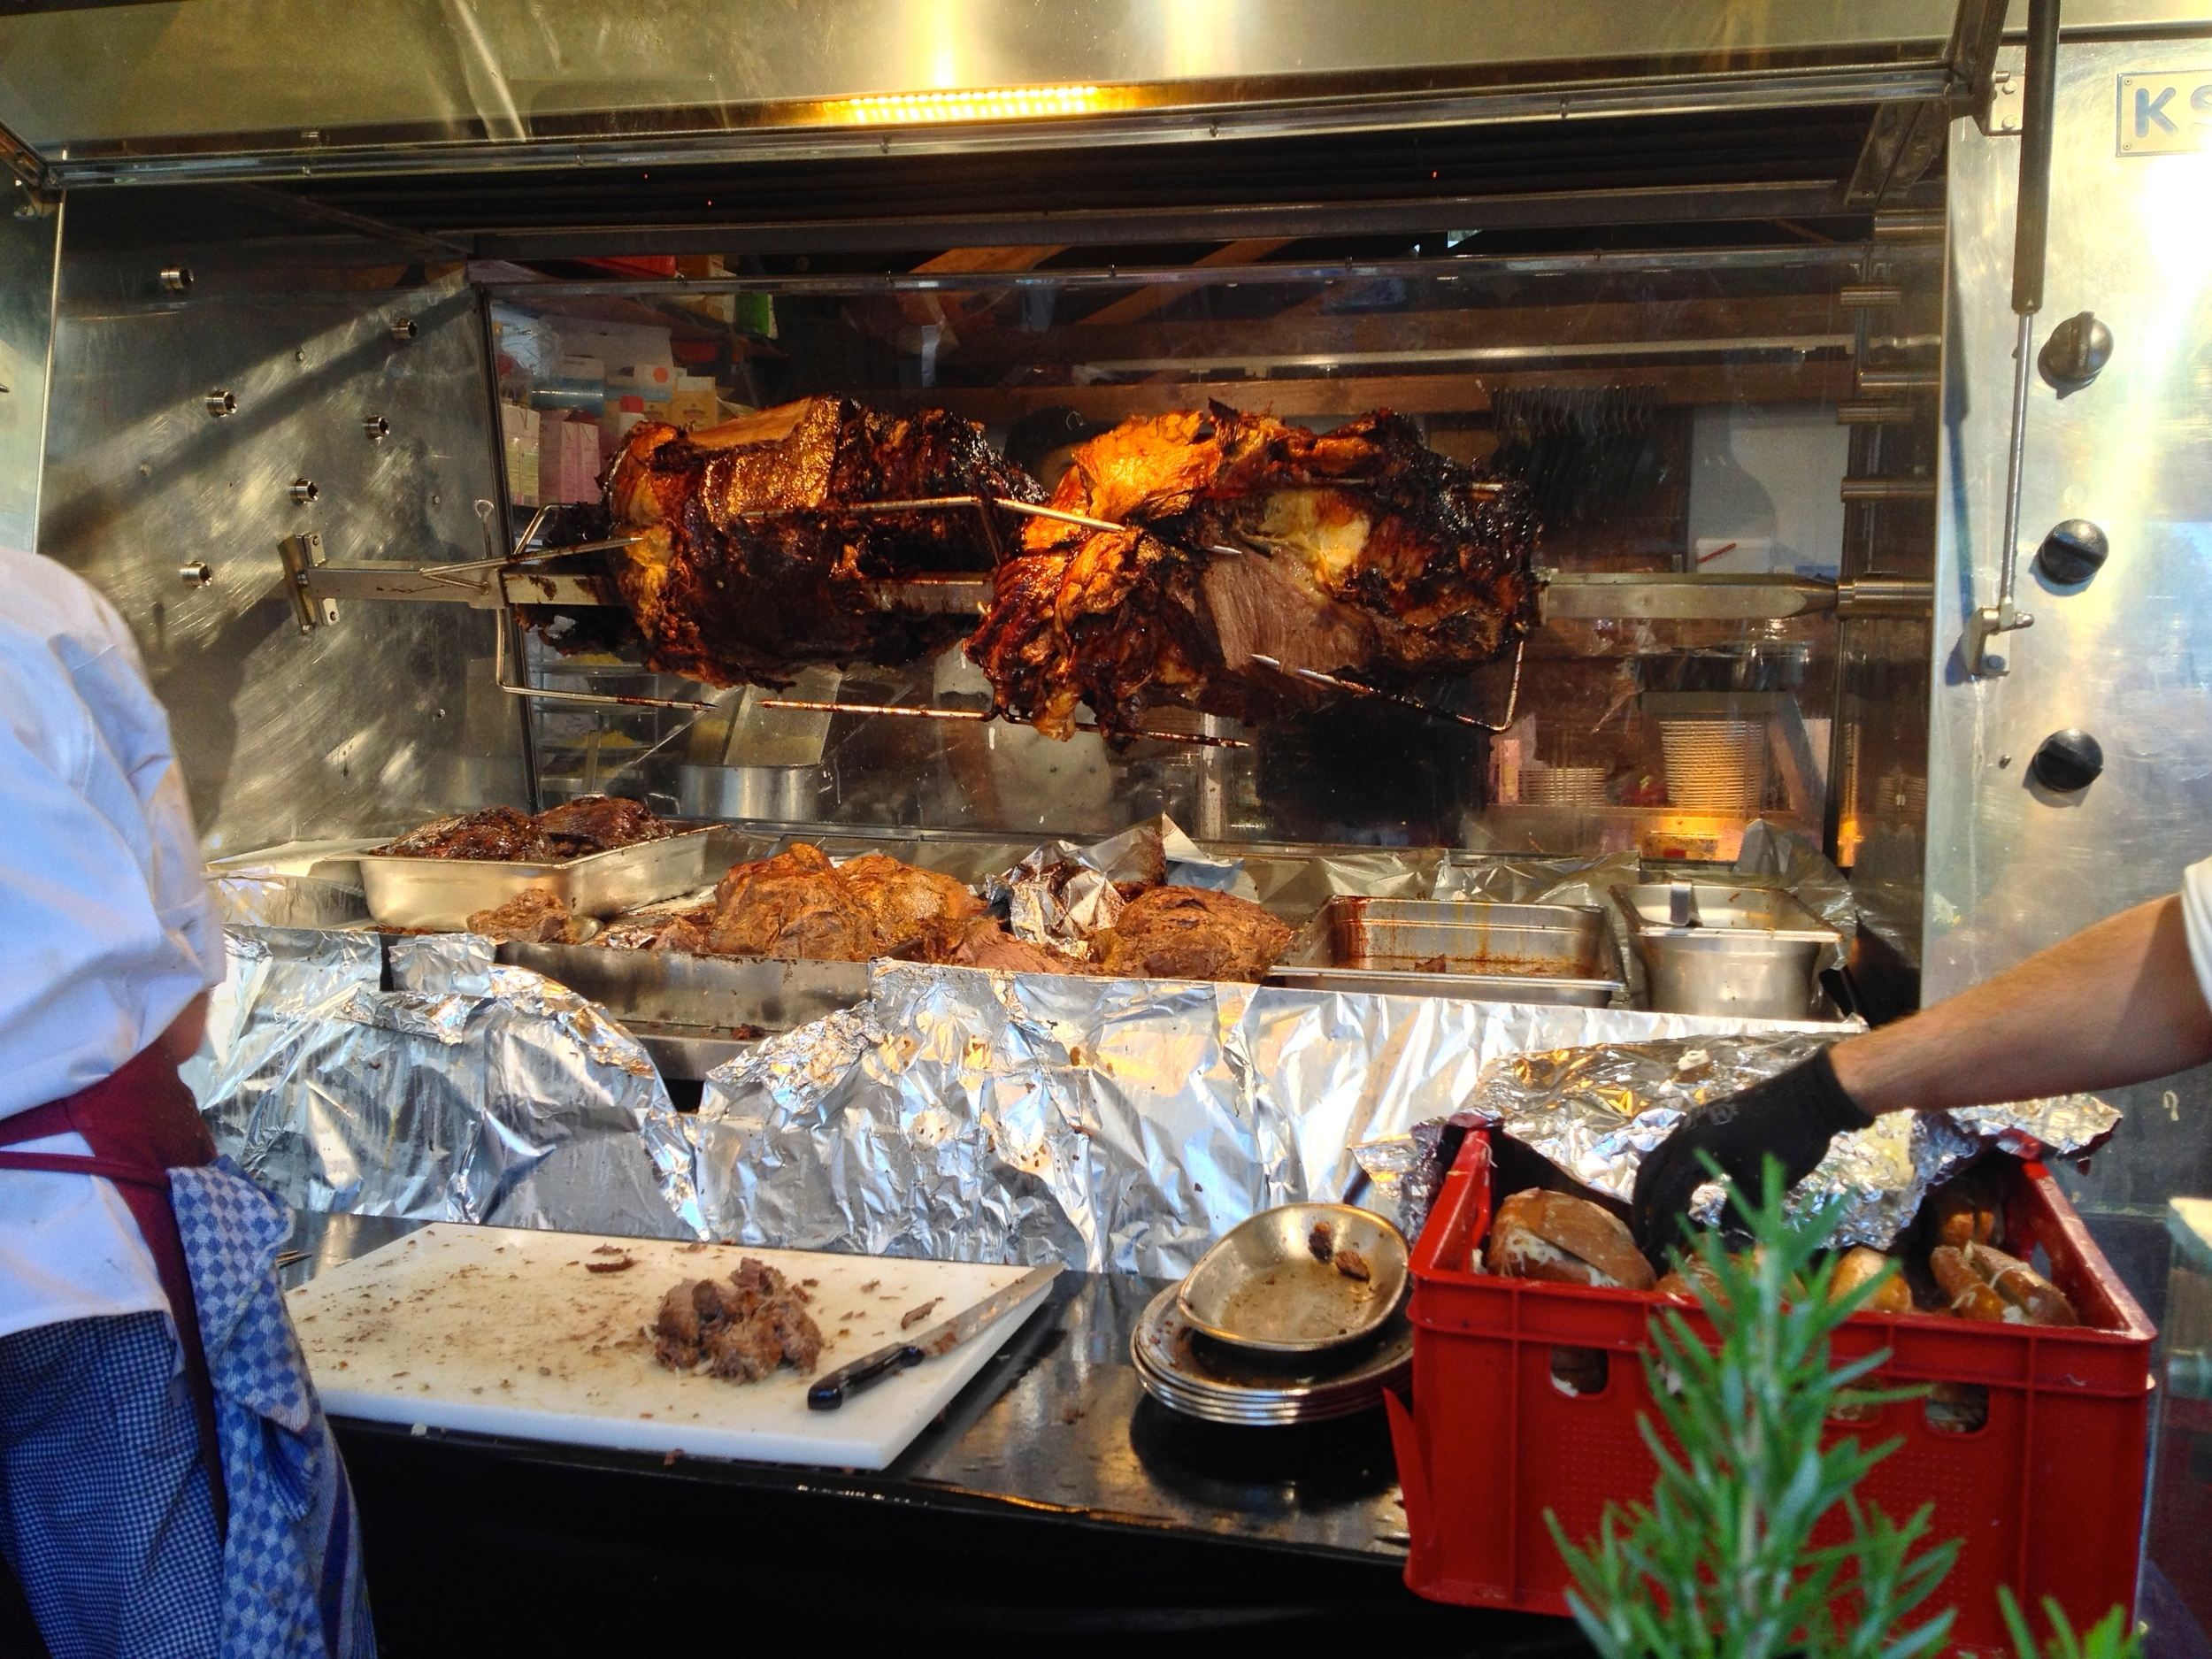 A large Ox shank roasting on a spit